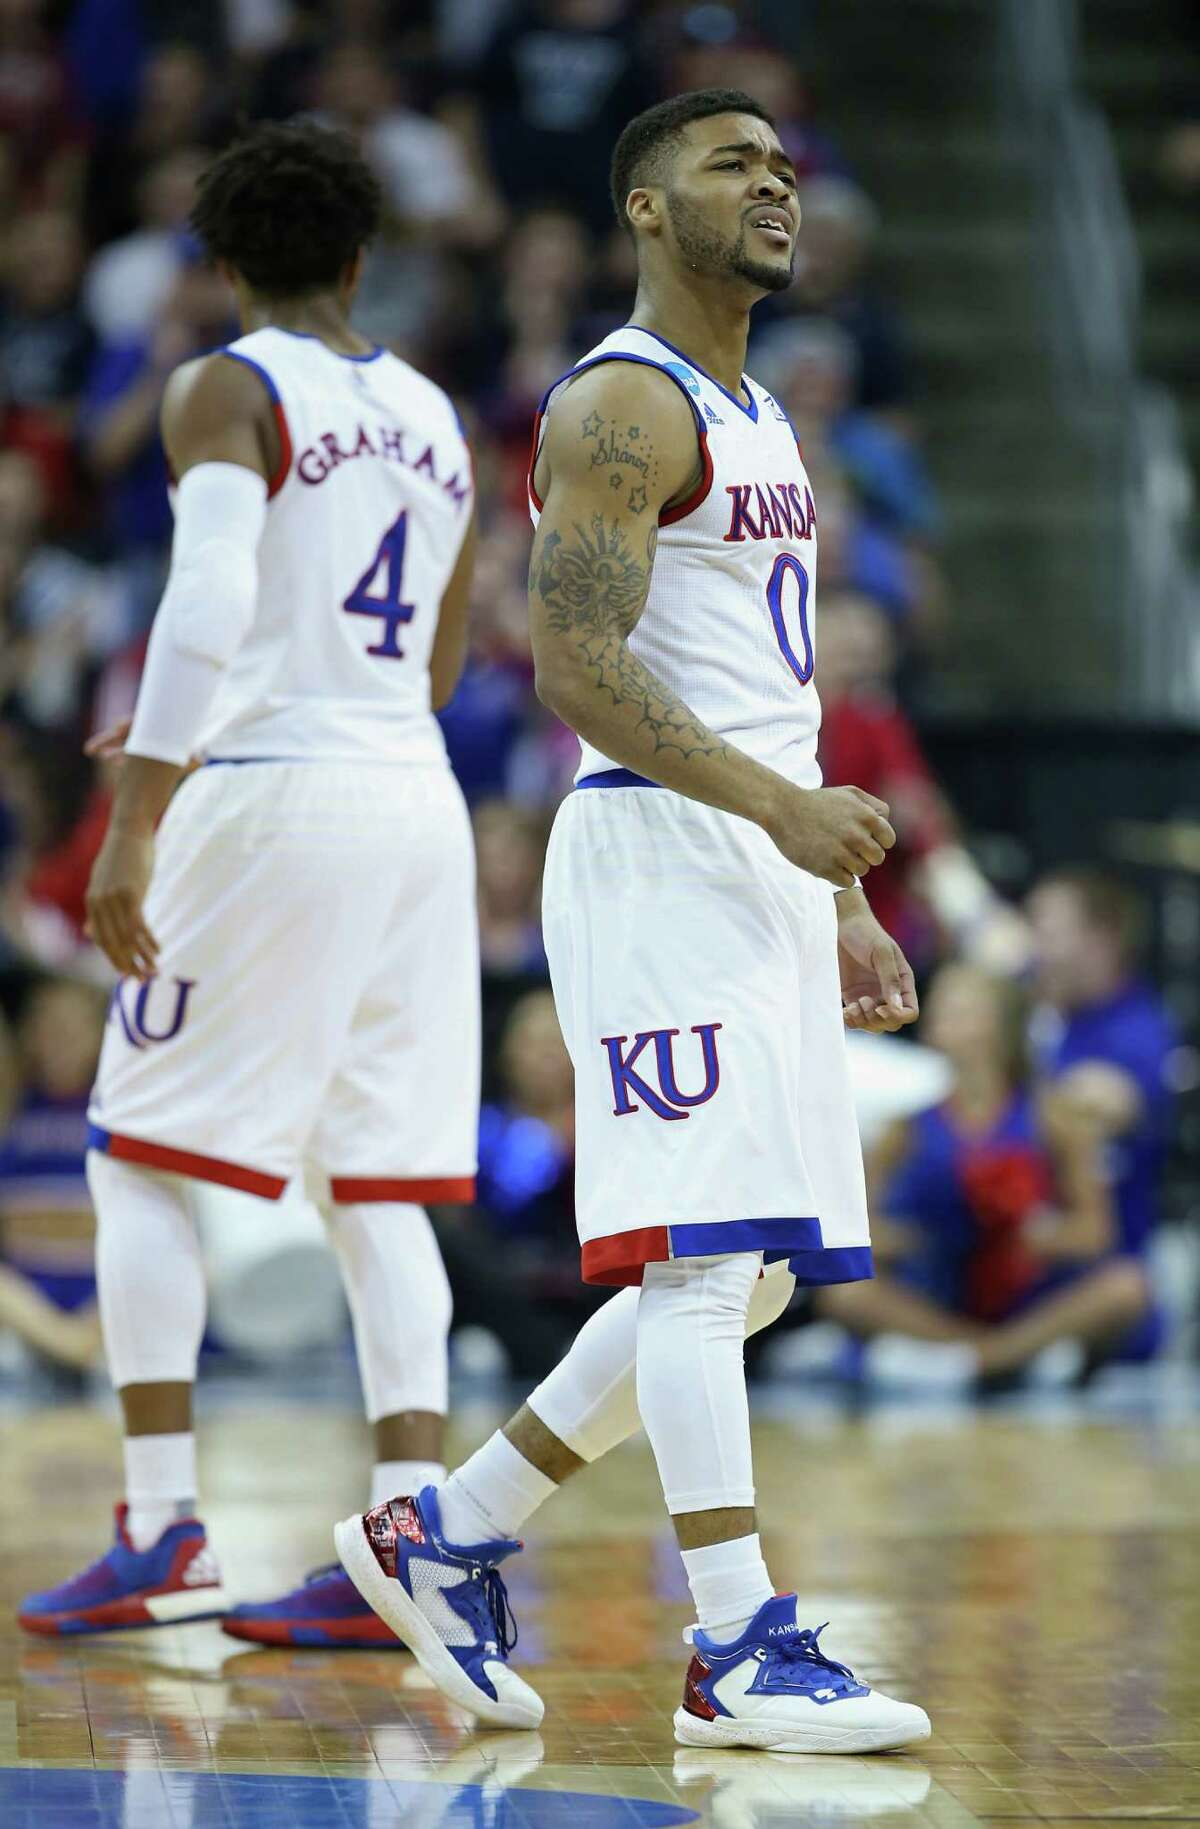 LOUISVILLE, KY - MARCH 26: Frank Mason III #0 of the Kansas Jayhawks reacts in the second half against the Villanova Wildcats during the 2016 NCAA Men's Basketball Tournament South Regional at KFC YUM! Center on March 26, 2016 in Louisville, Kentucky.